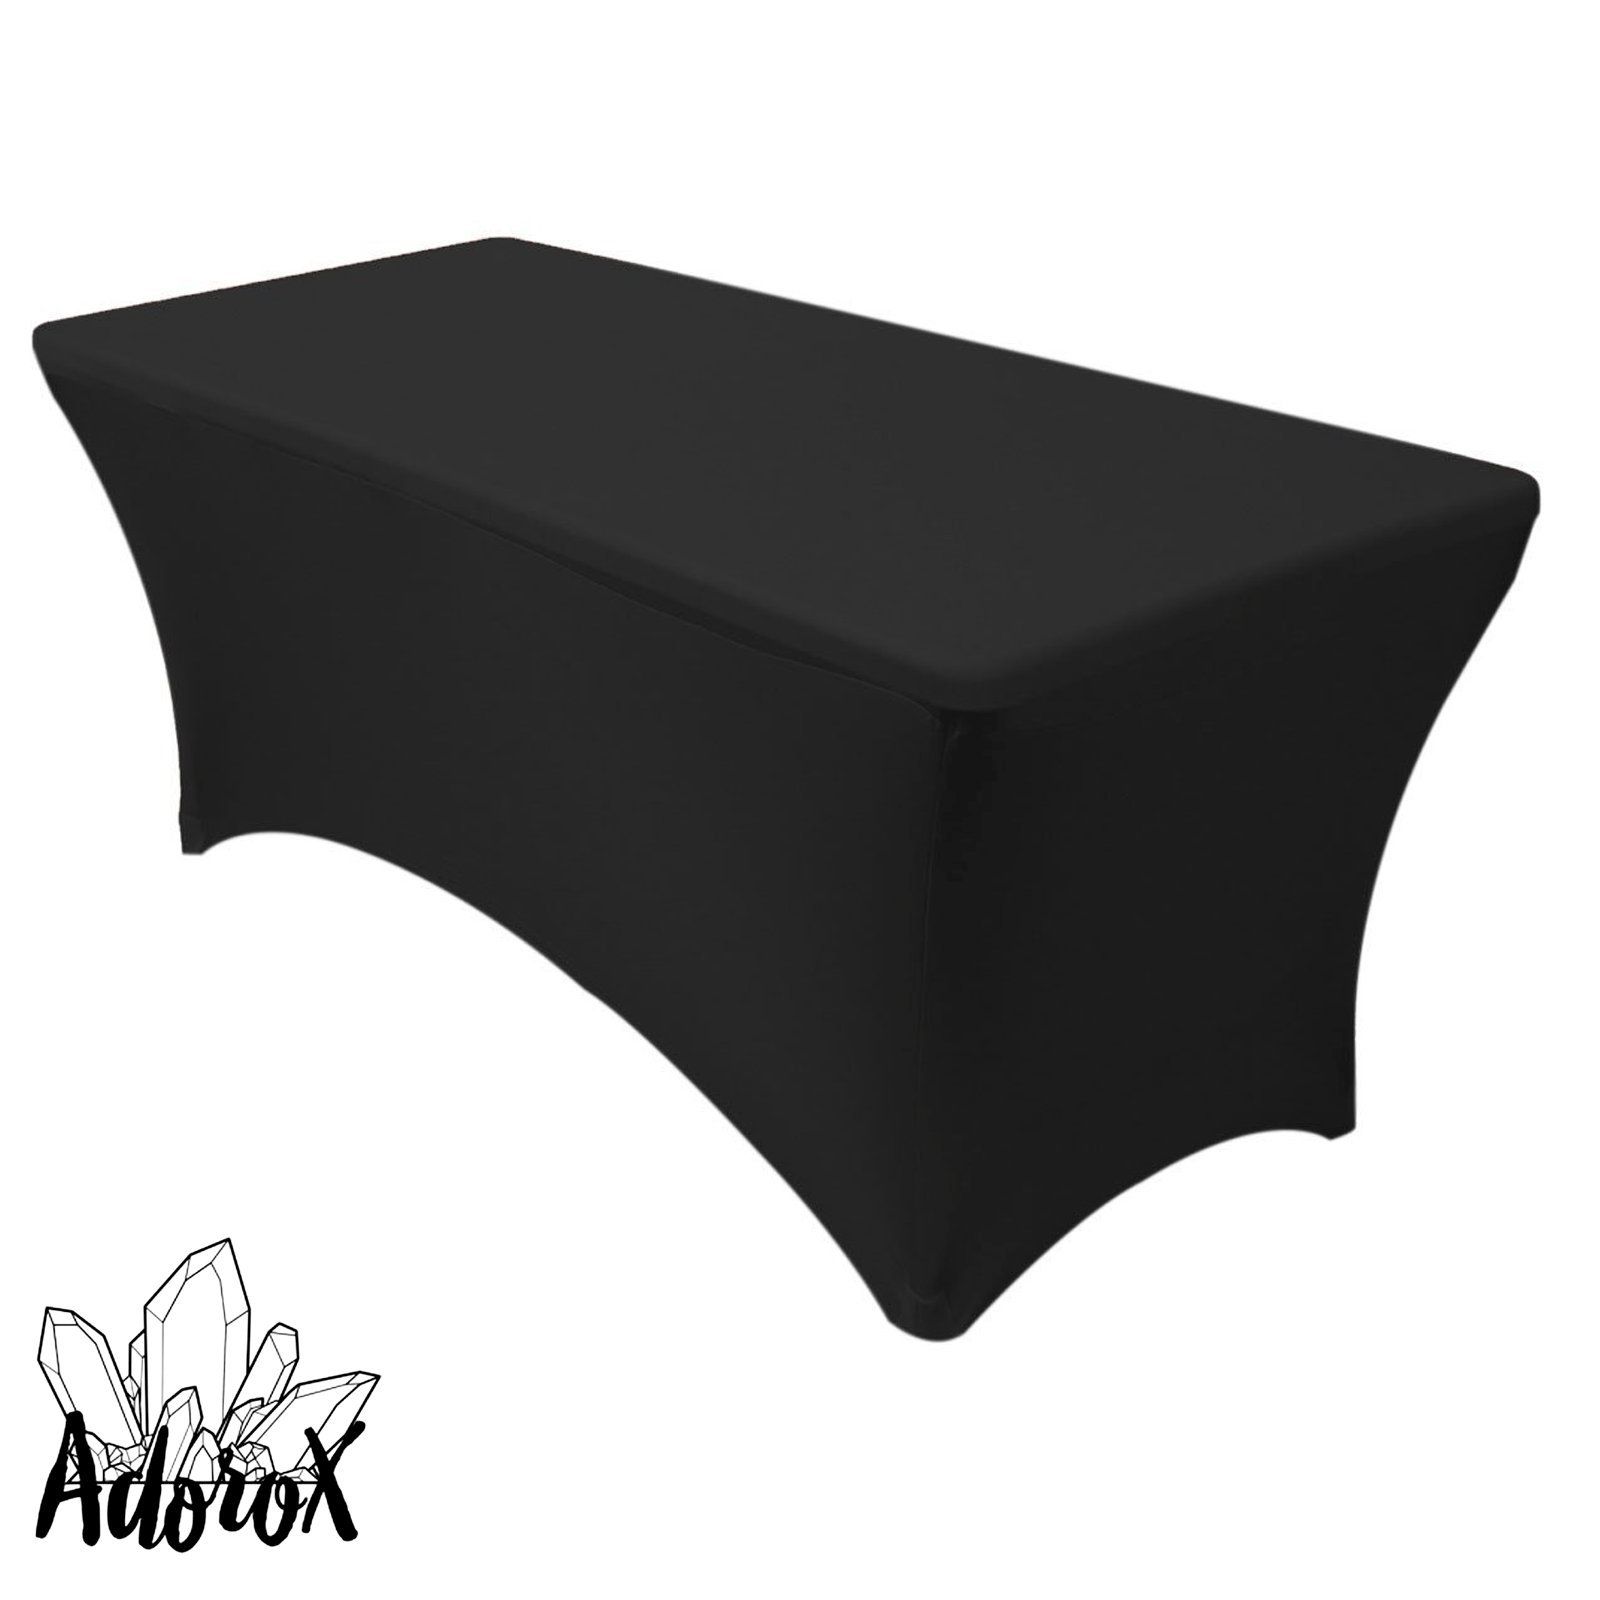 Adorox (4 Pcs 4 ft Black Stretch Fabric Spandex Tight Fit Table Cloth Cover